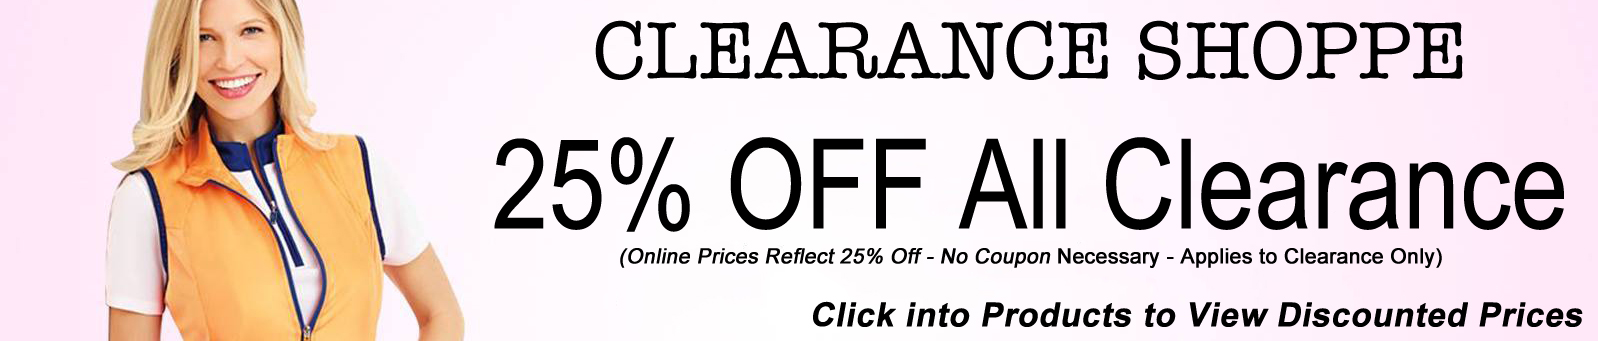 Clearance Shoppe Specials